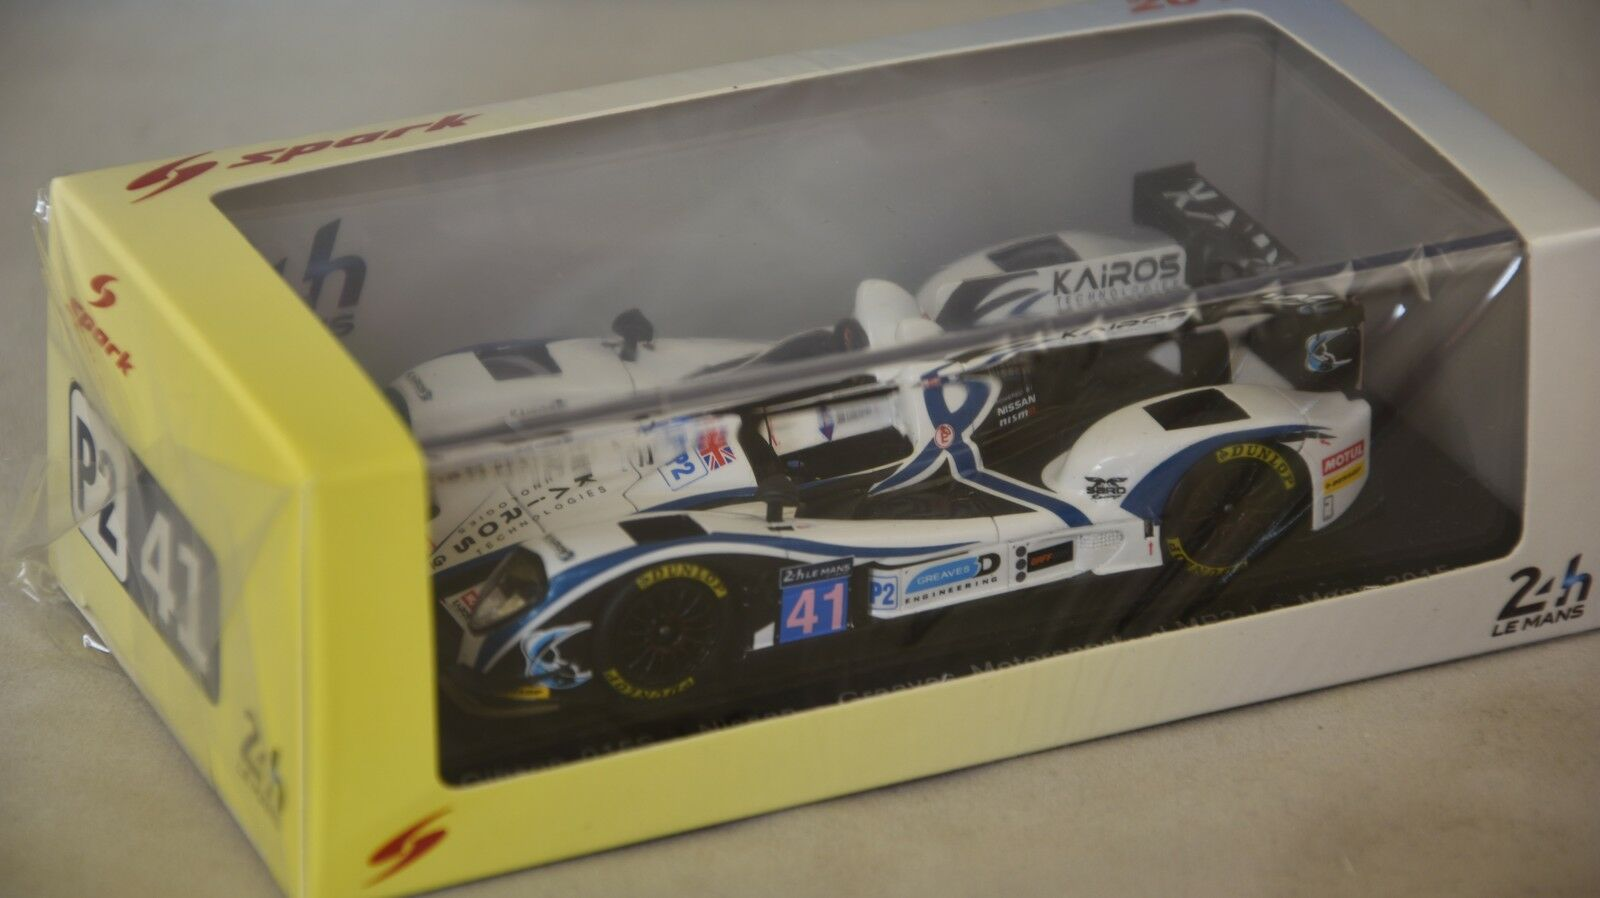 Spark S4655 - GIBSON 015S - NISSAN n 41 Le Mans 2015 Greaves  1/43